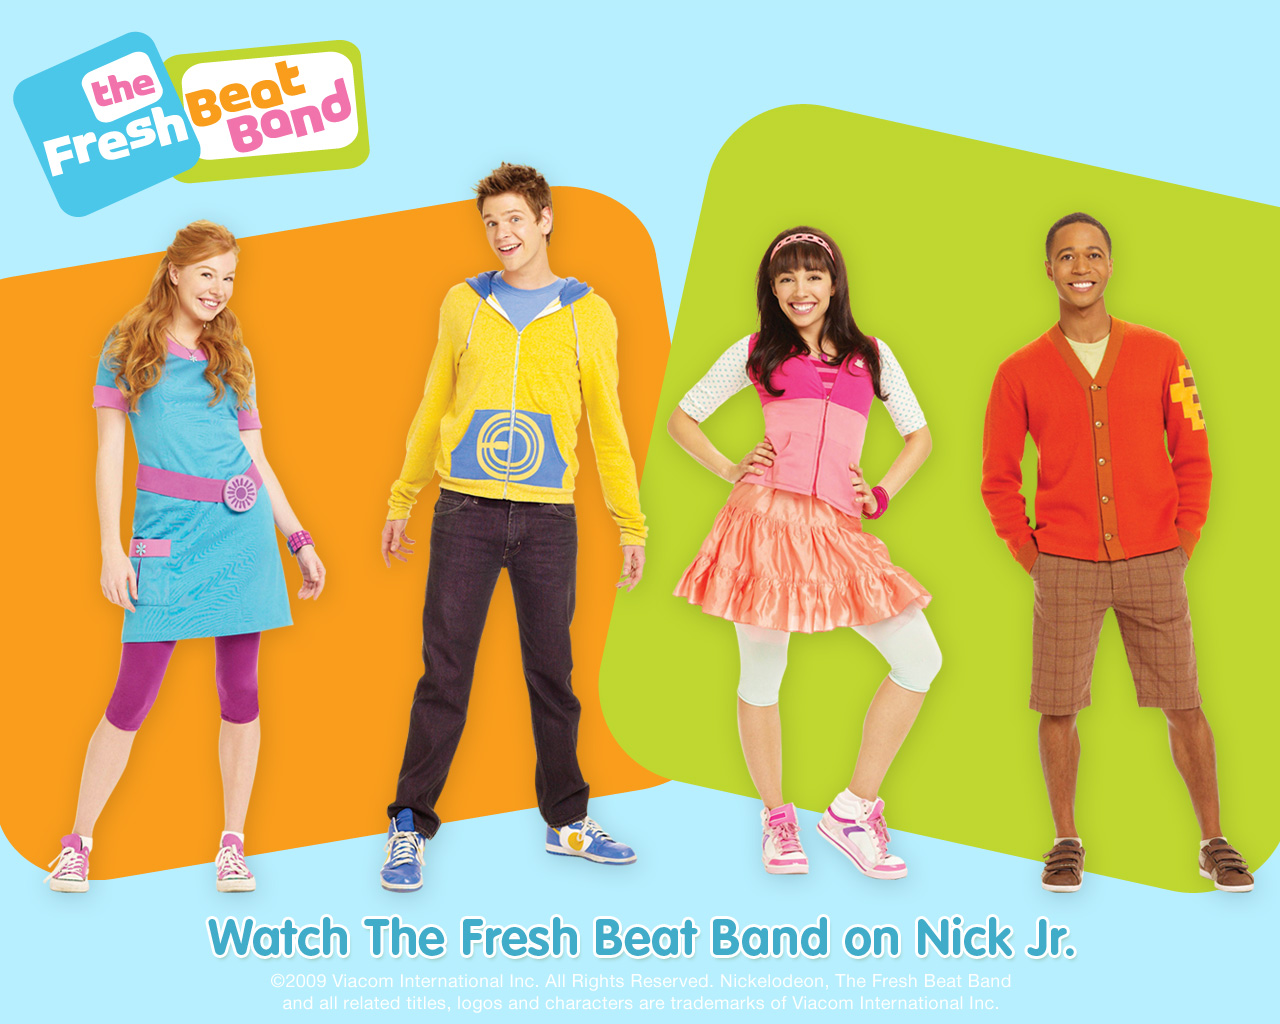 Who are the fresh beat band members dating